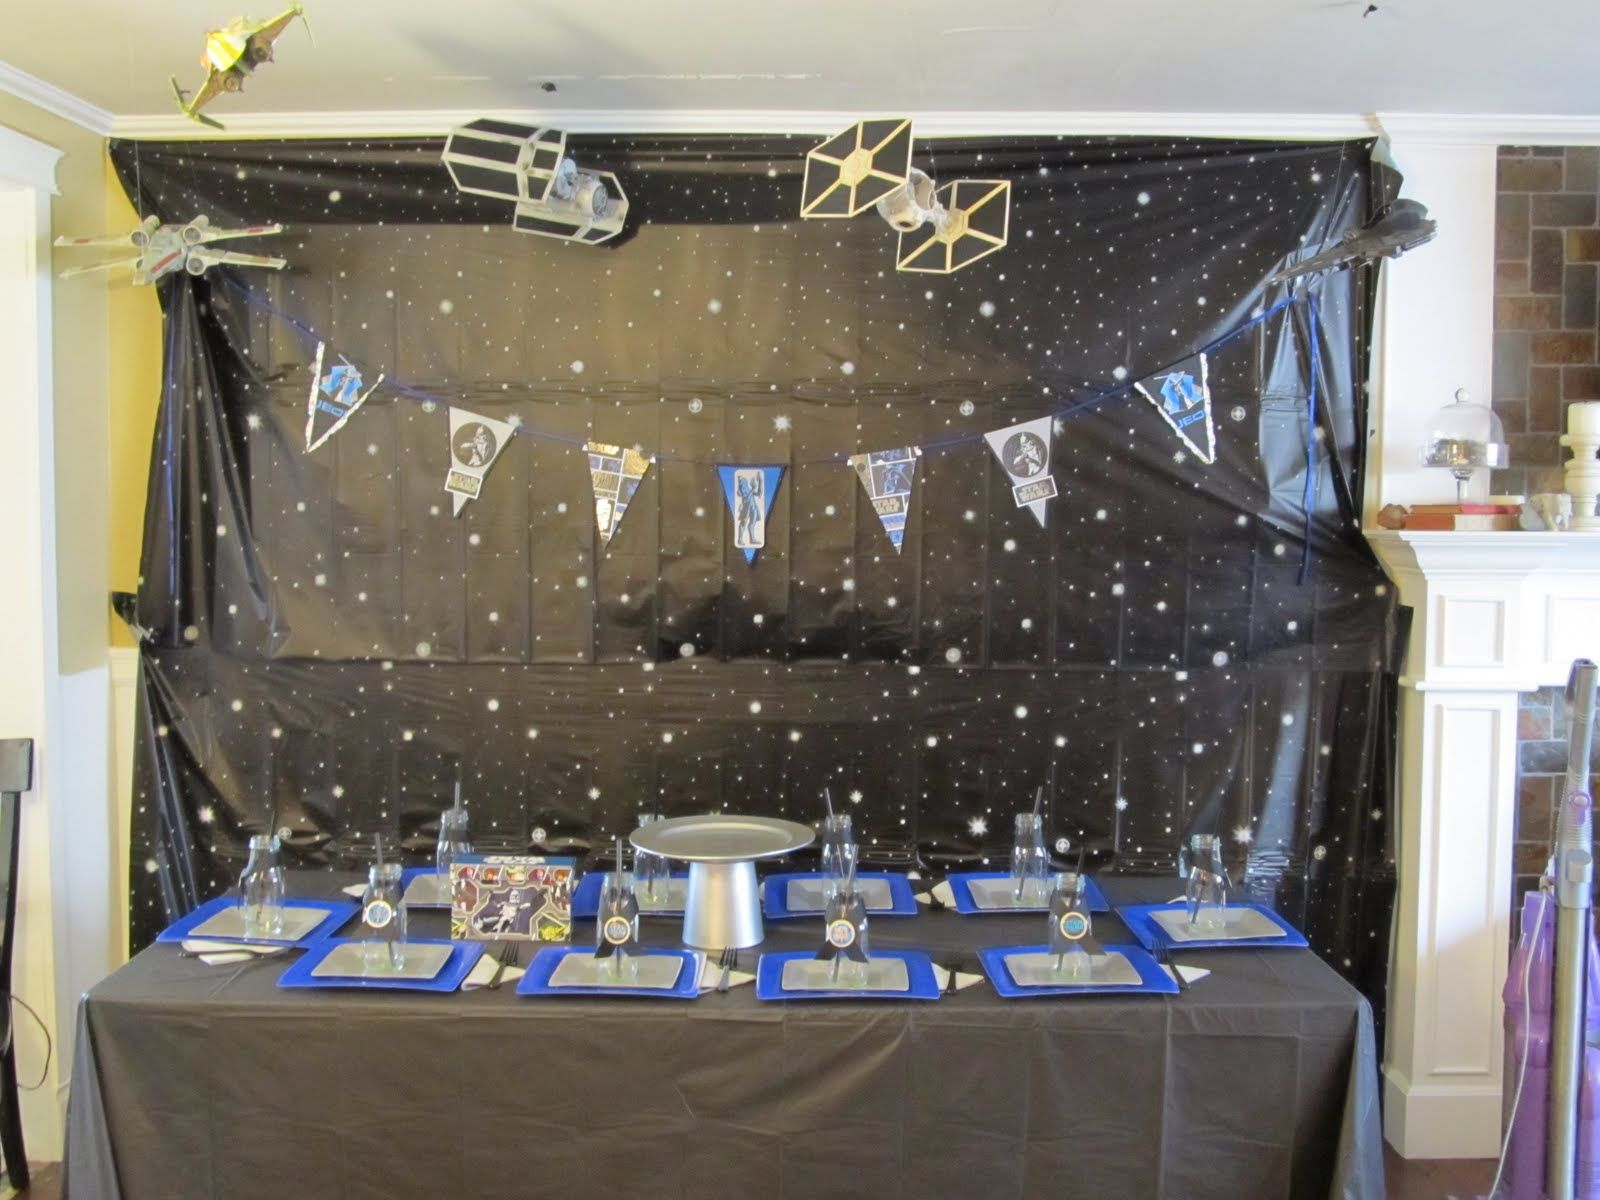 Star Wars Decorating Ideas Star Wars Table Decorations Star Wars Birthday Bash